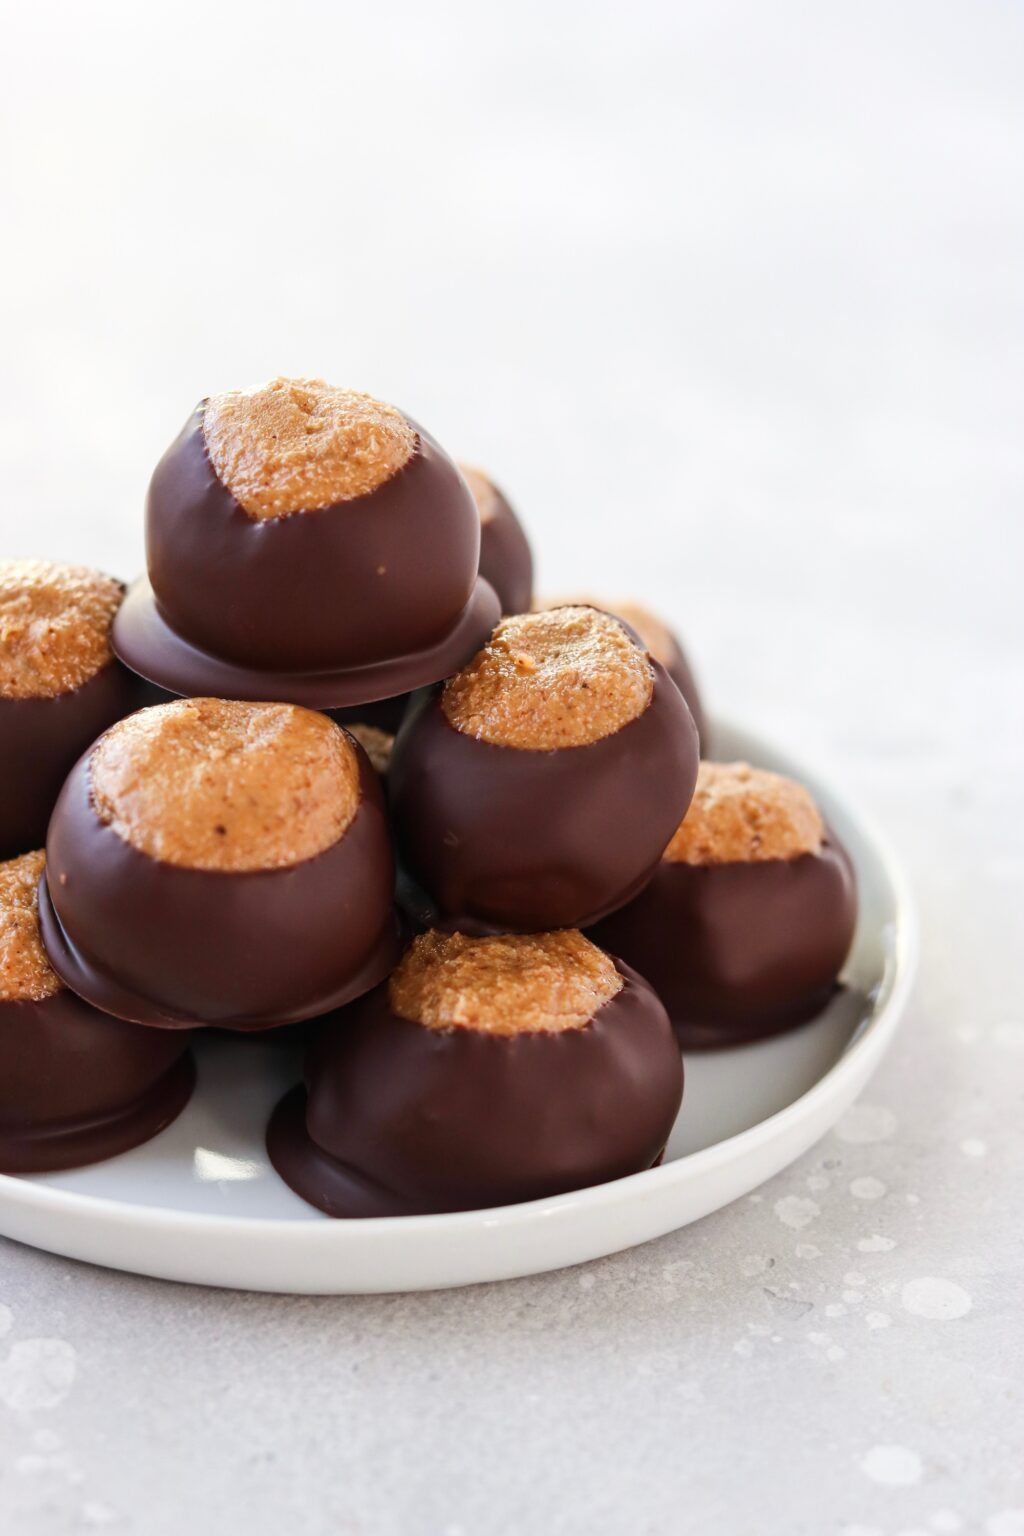 These Paleo Buckeye Balls are a gluten free, vegan, and dairy free version of the classic Christmas Cookie. Legume free as well! #christmas #holidays #cookies #cookieexchange #paleocookies #buckeyeballs #buckeyes #paleobuckeyes #paleochristmascookies #paleoholidayfood #holidaydesserts